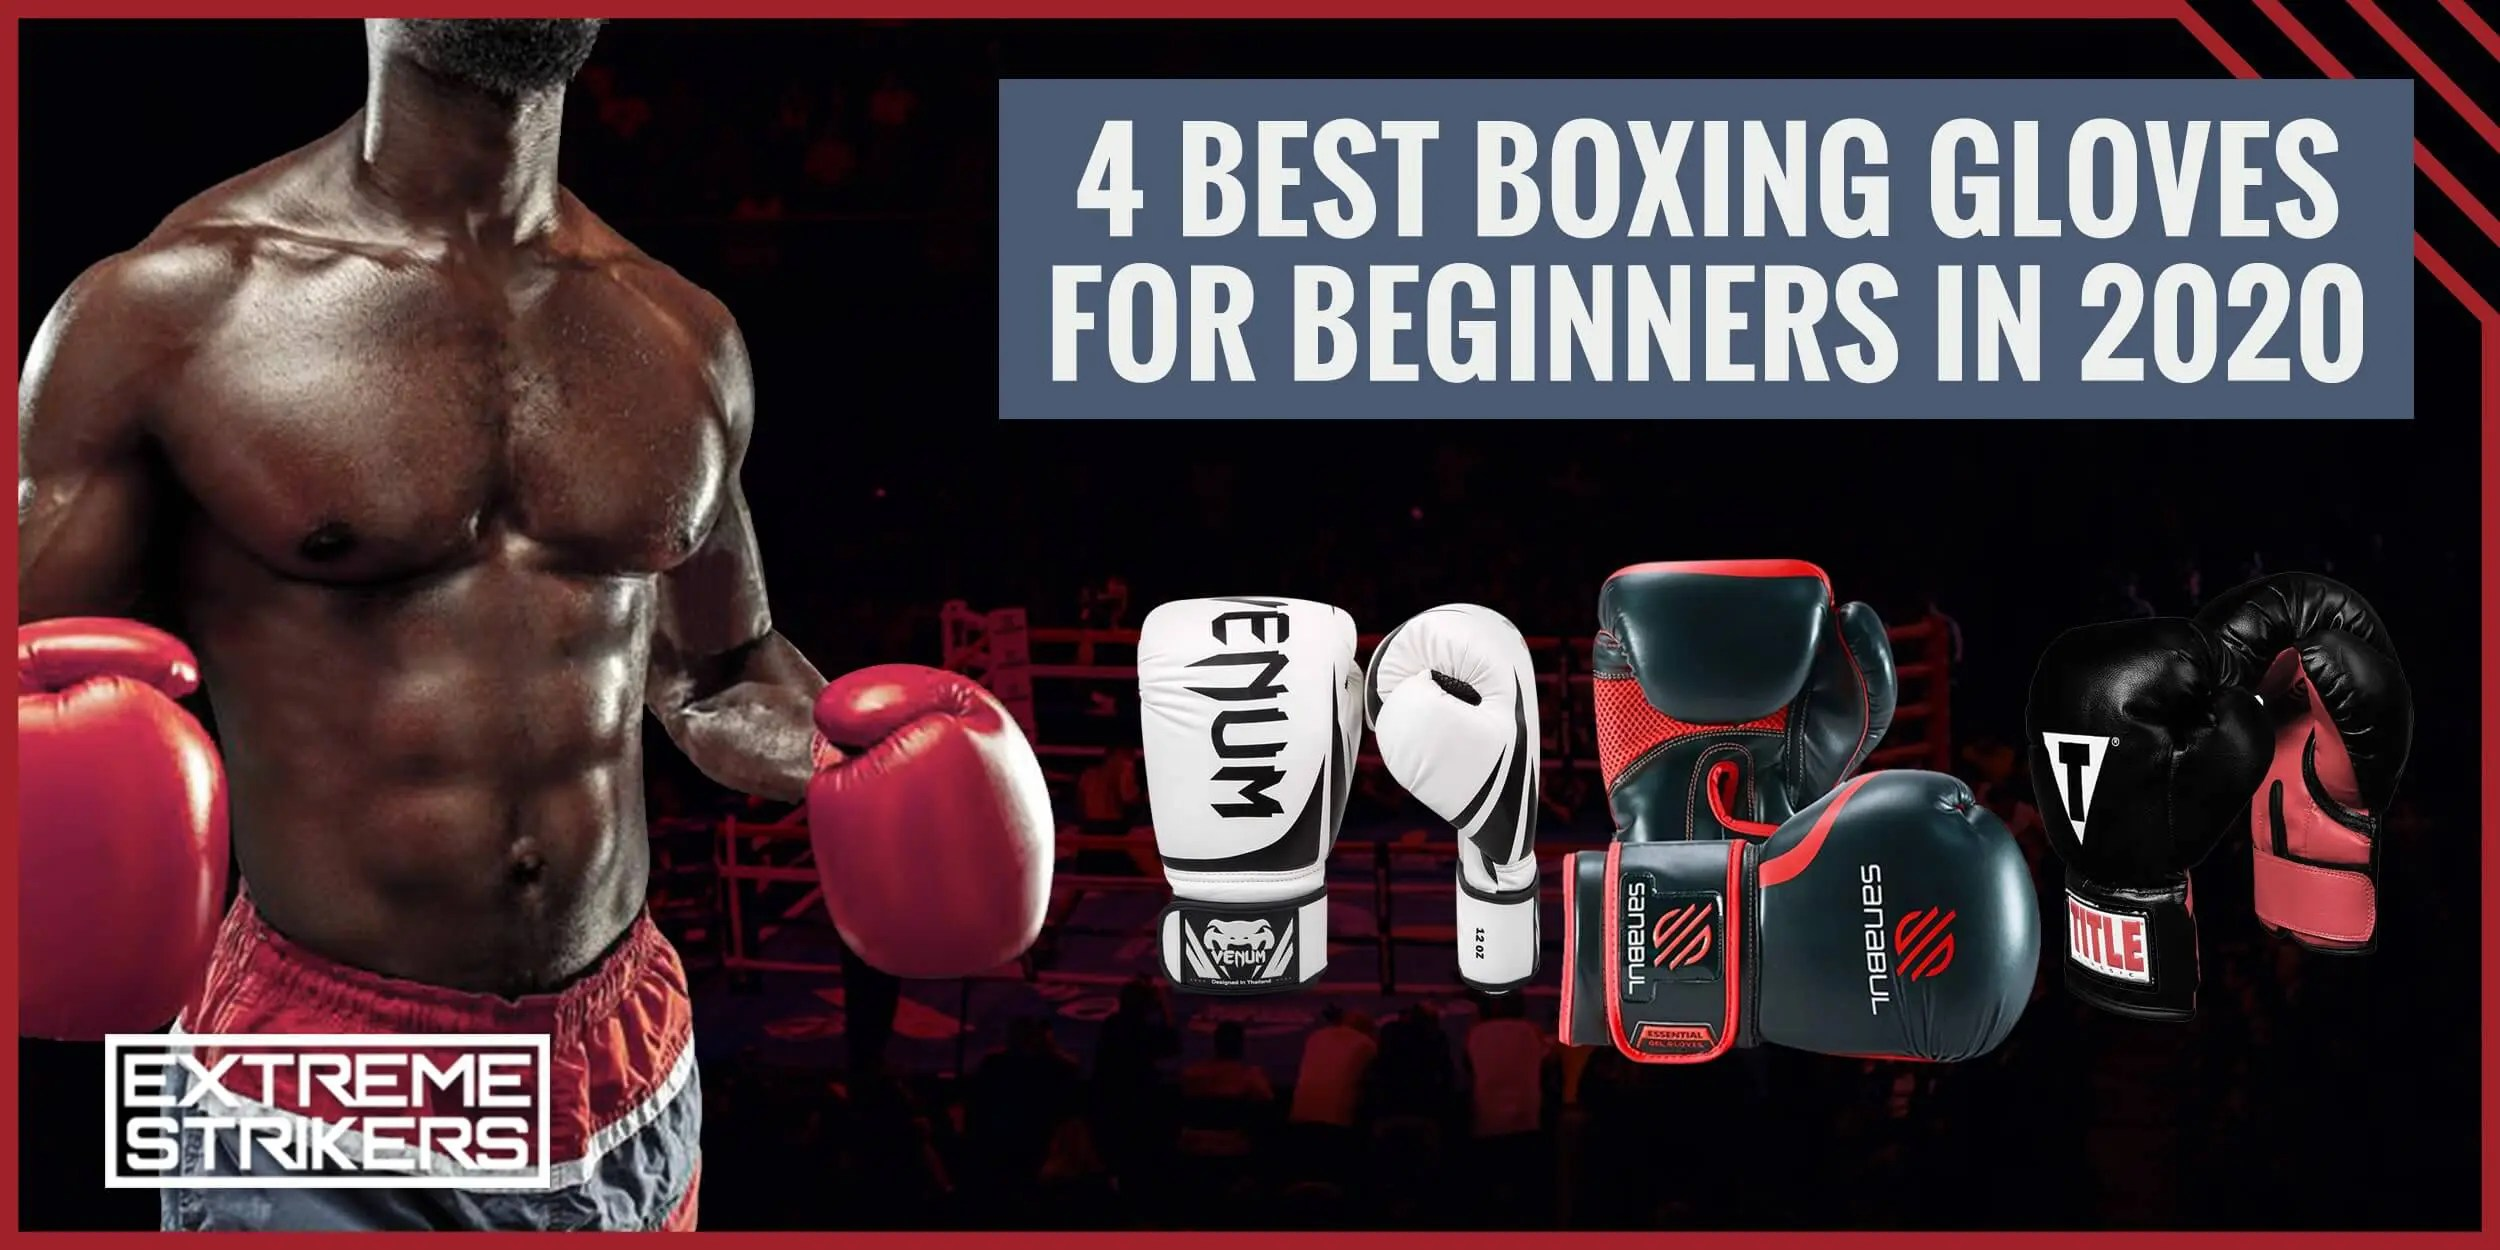 4 BEST BOXING GLOVES FOR BEGINNERS IN 2020